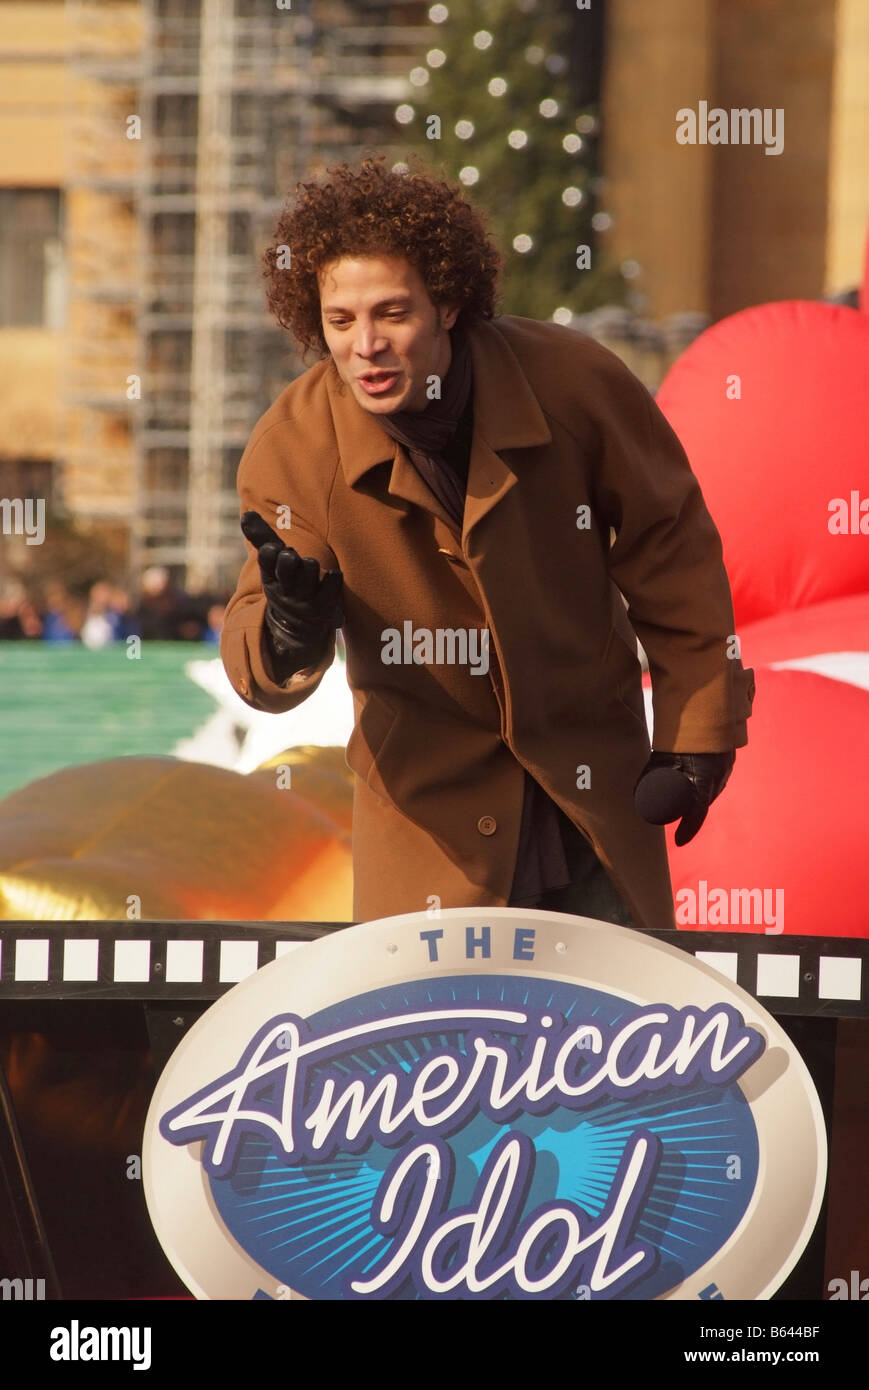 d3aaa4ec76 American Idol Justin Guarini sings at the Philadelphia Thanksgiving Day  Parade 2008 - Stock Image